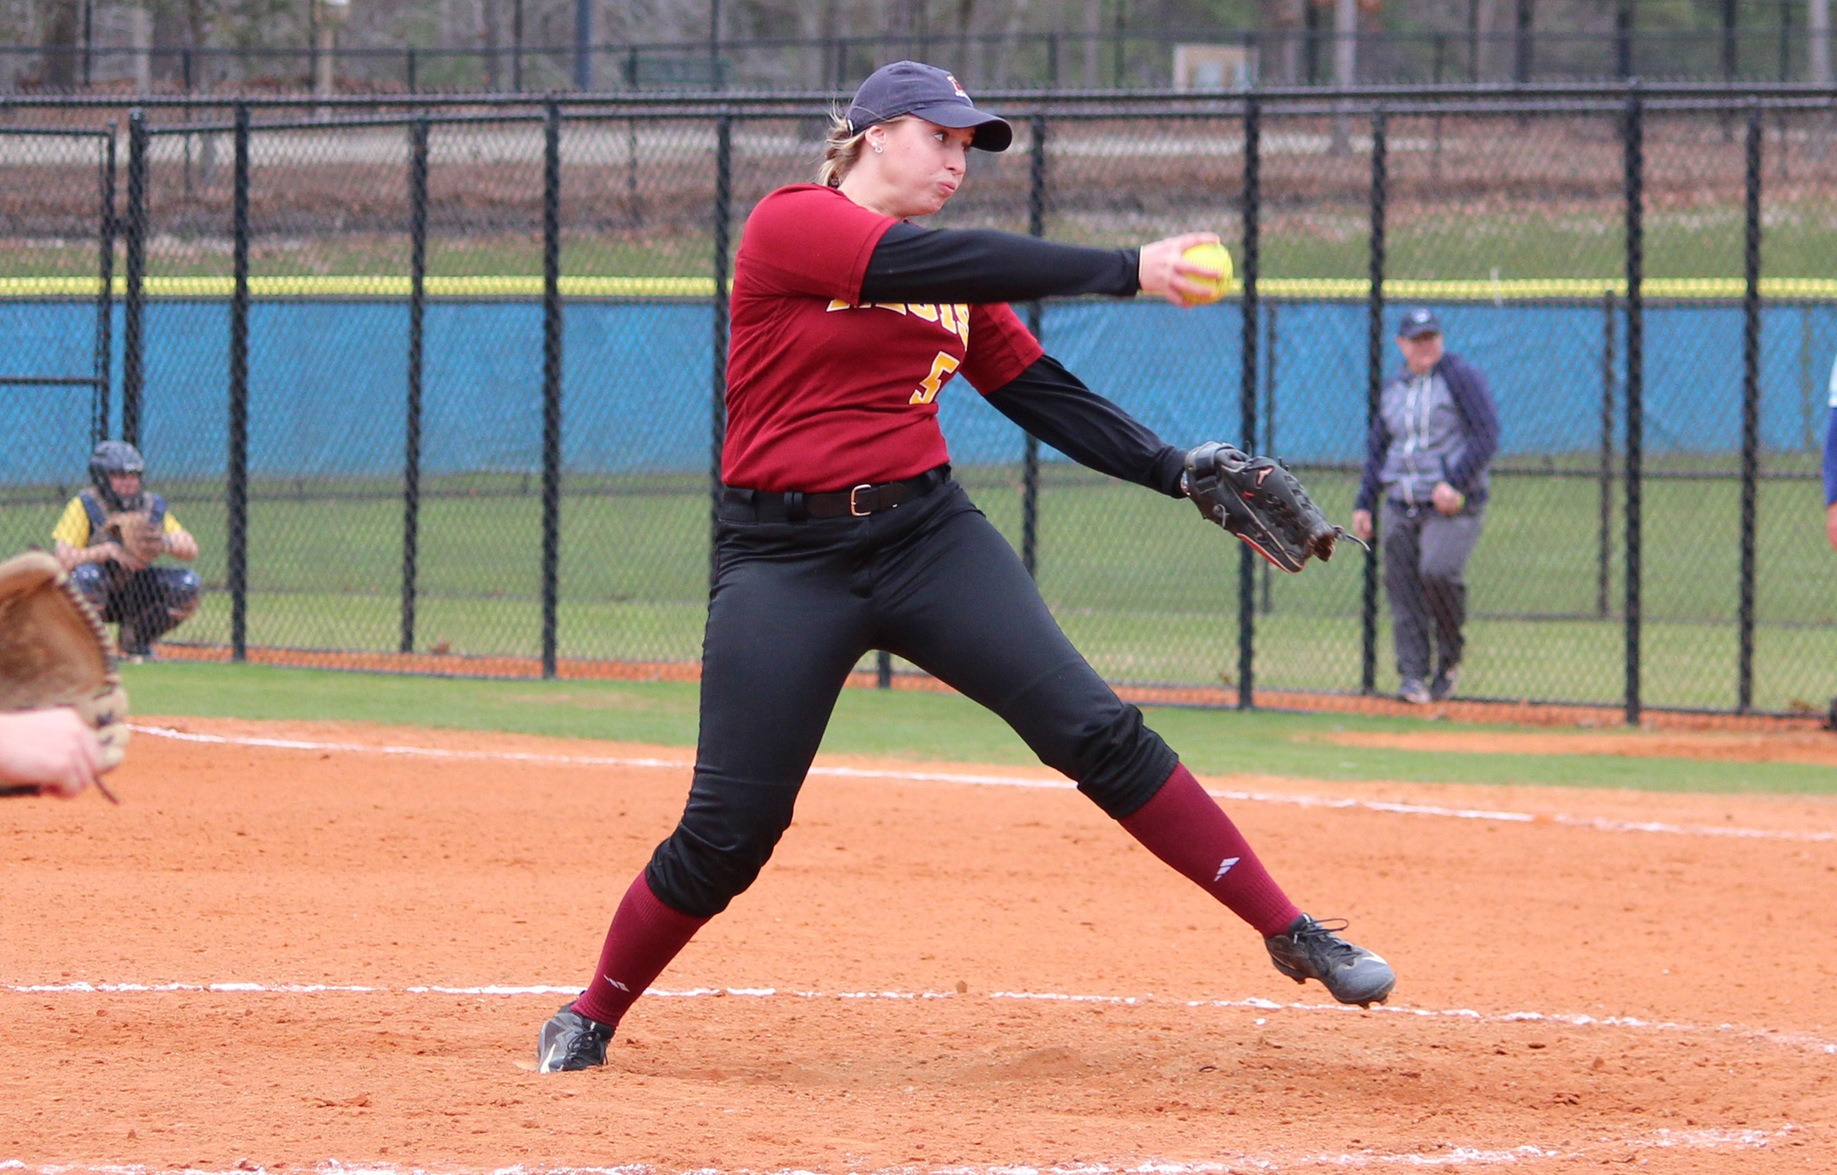 Softball Falls to King's for First Loss of 2018